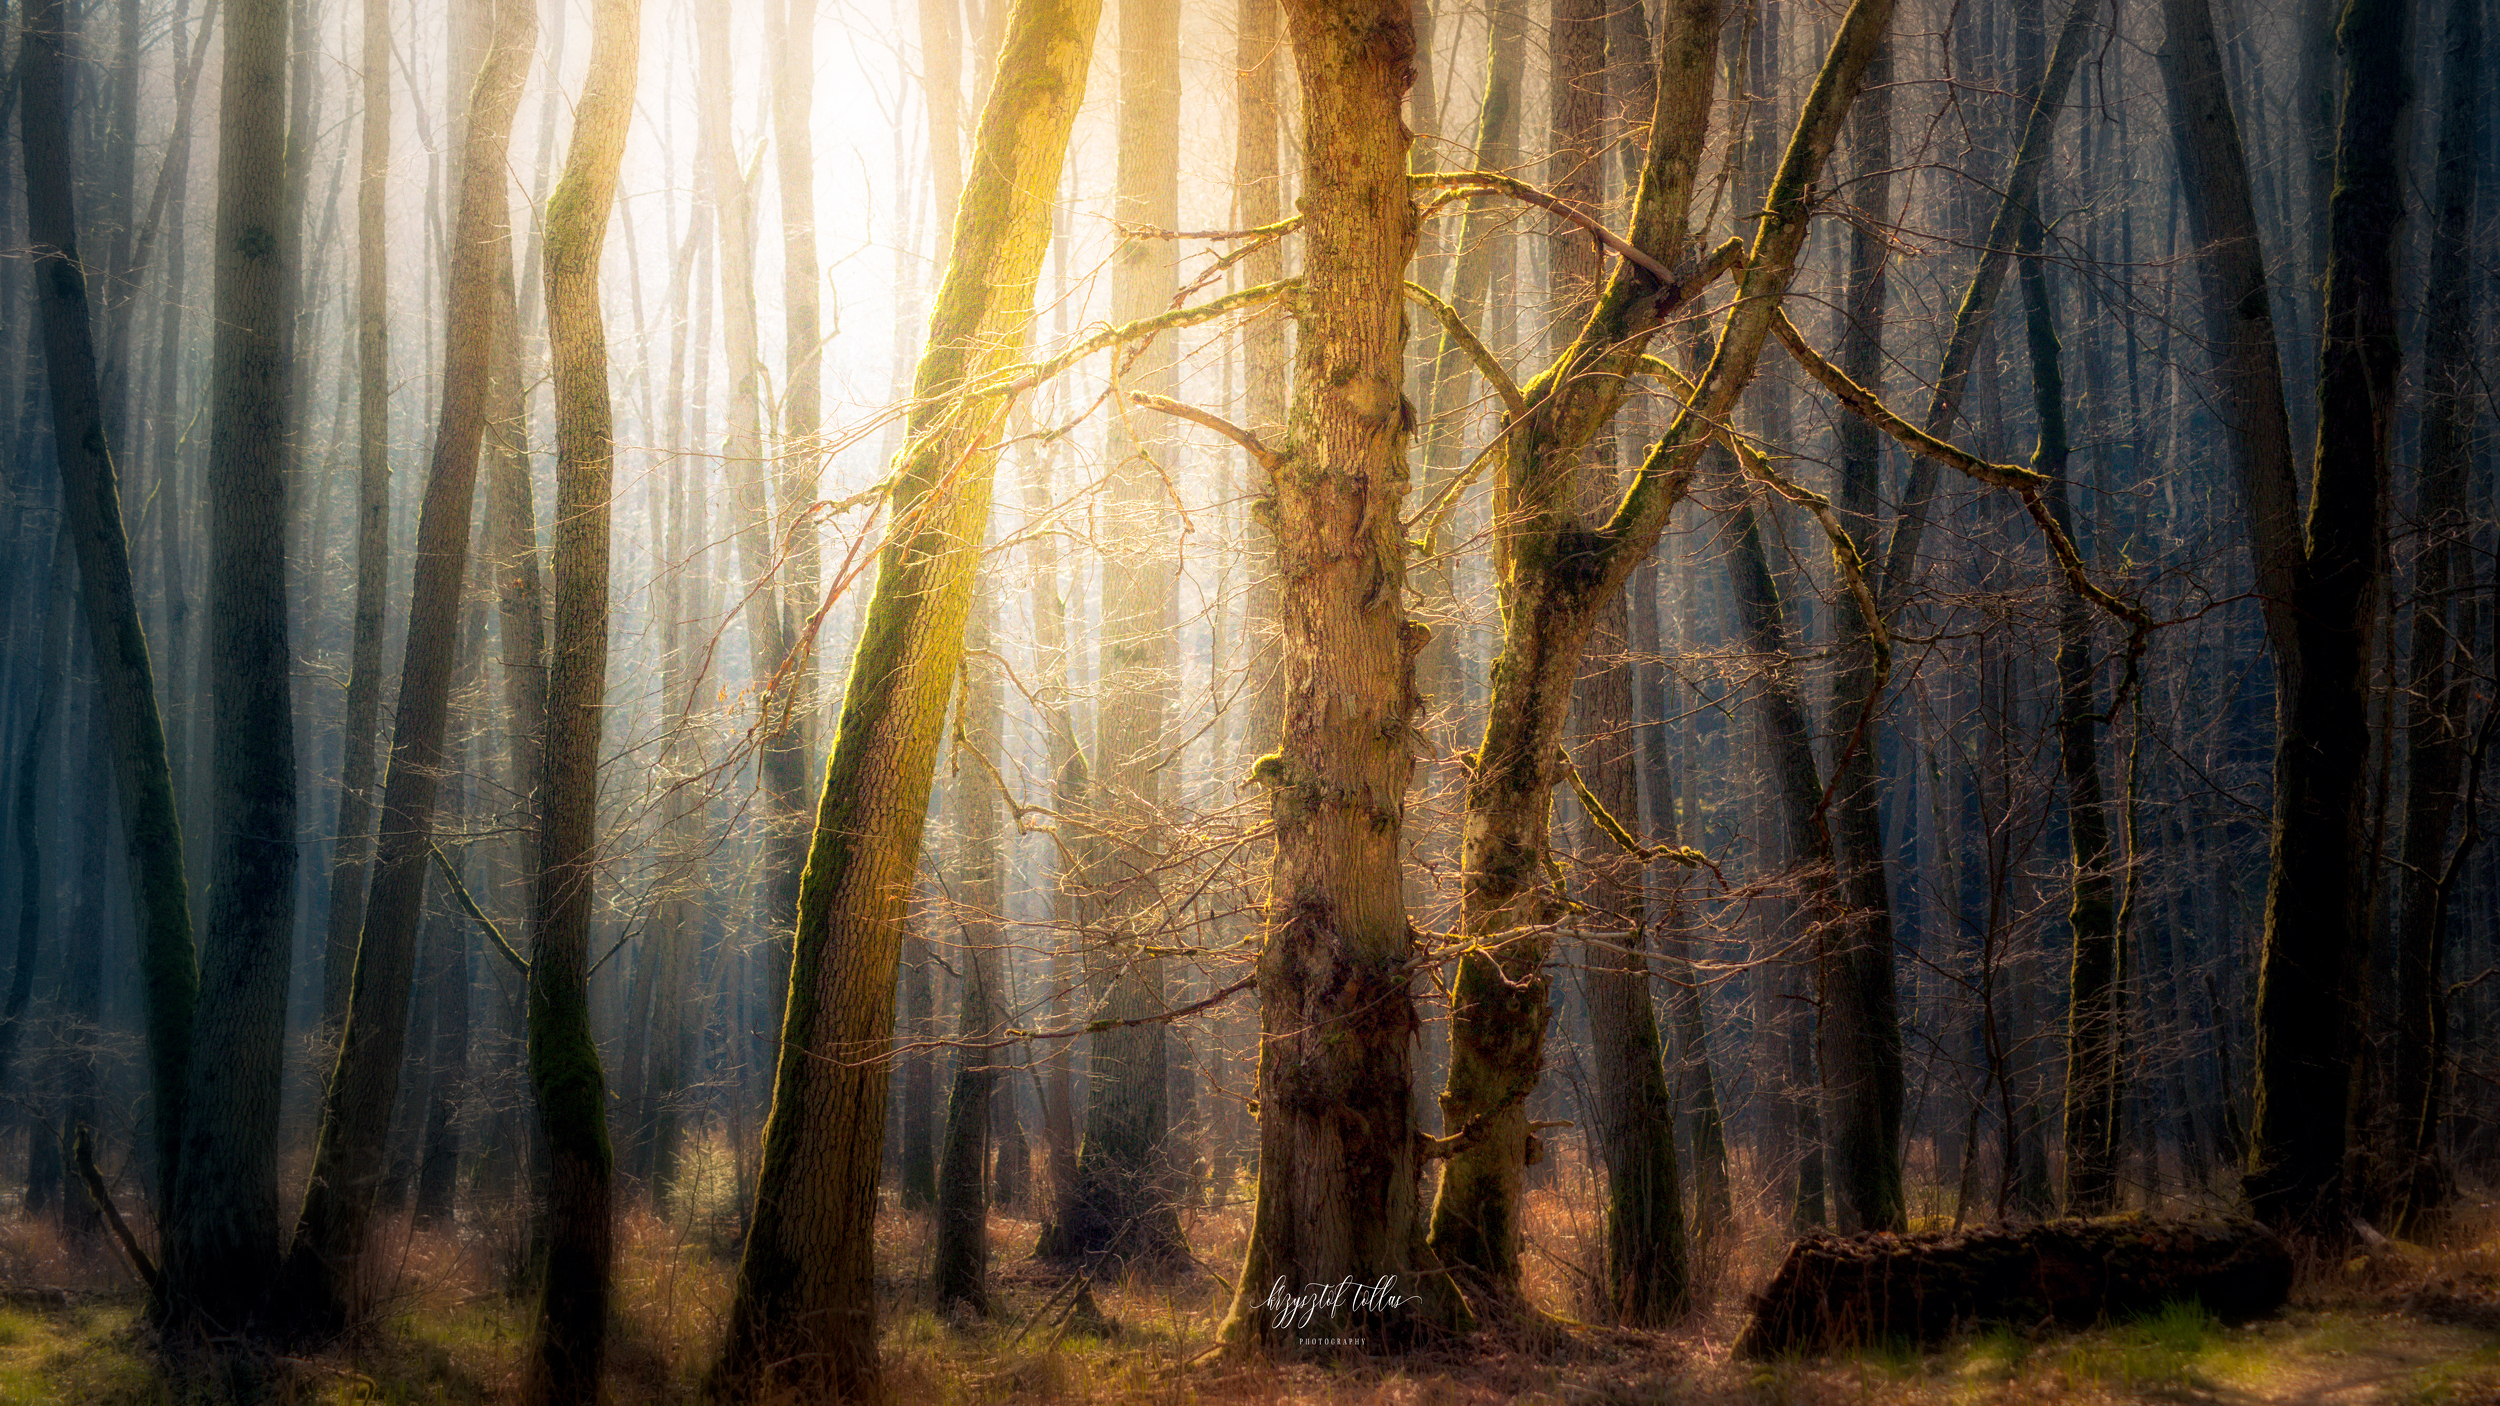 forest, natura, light, dawn, trees, forest atmosphere, nikon, mist, forest scenery, Tollas Krzysztof